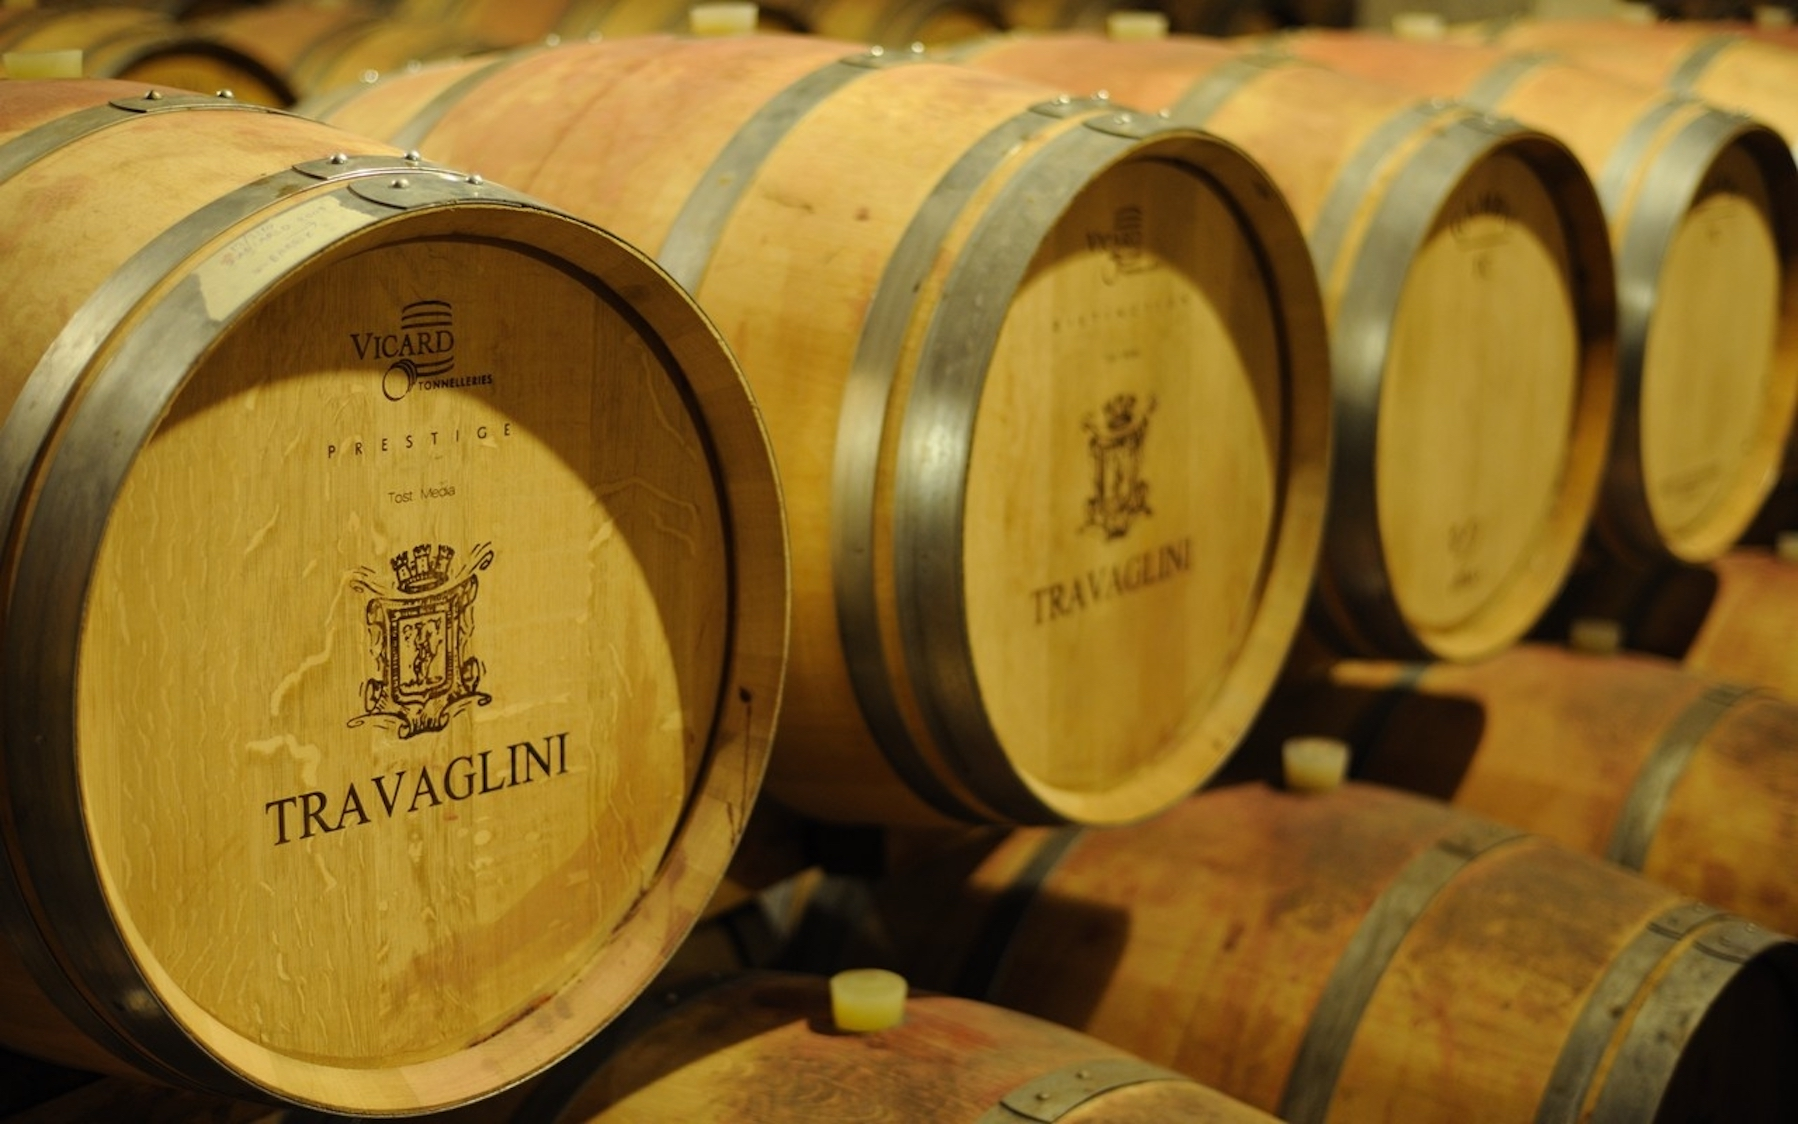 Travaglini Estate Wines brariques wine barrels